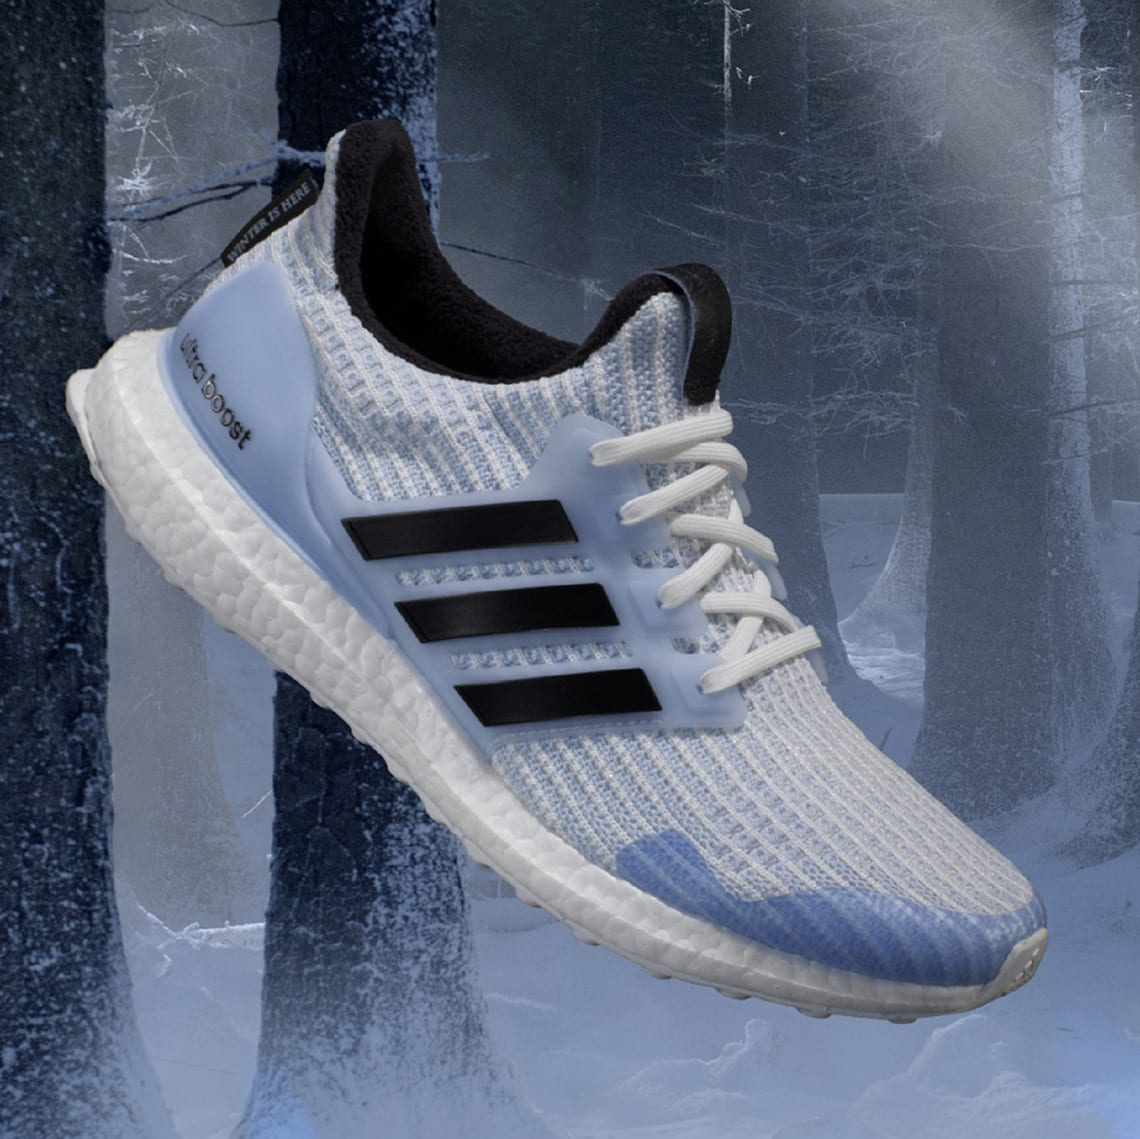 Adidas Original Shoes Limited Edition website